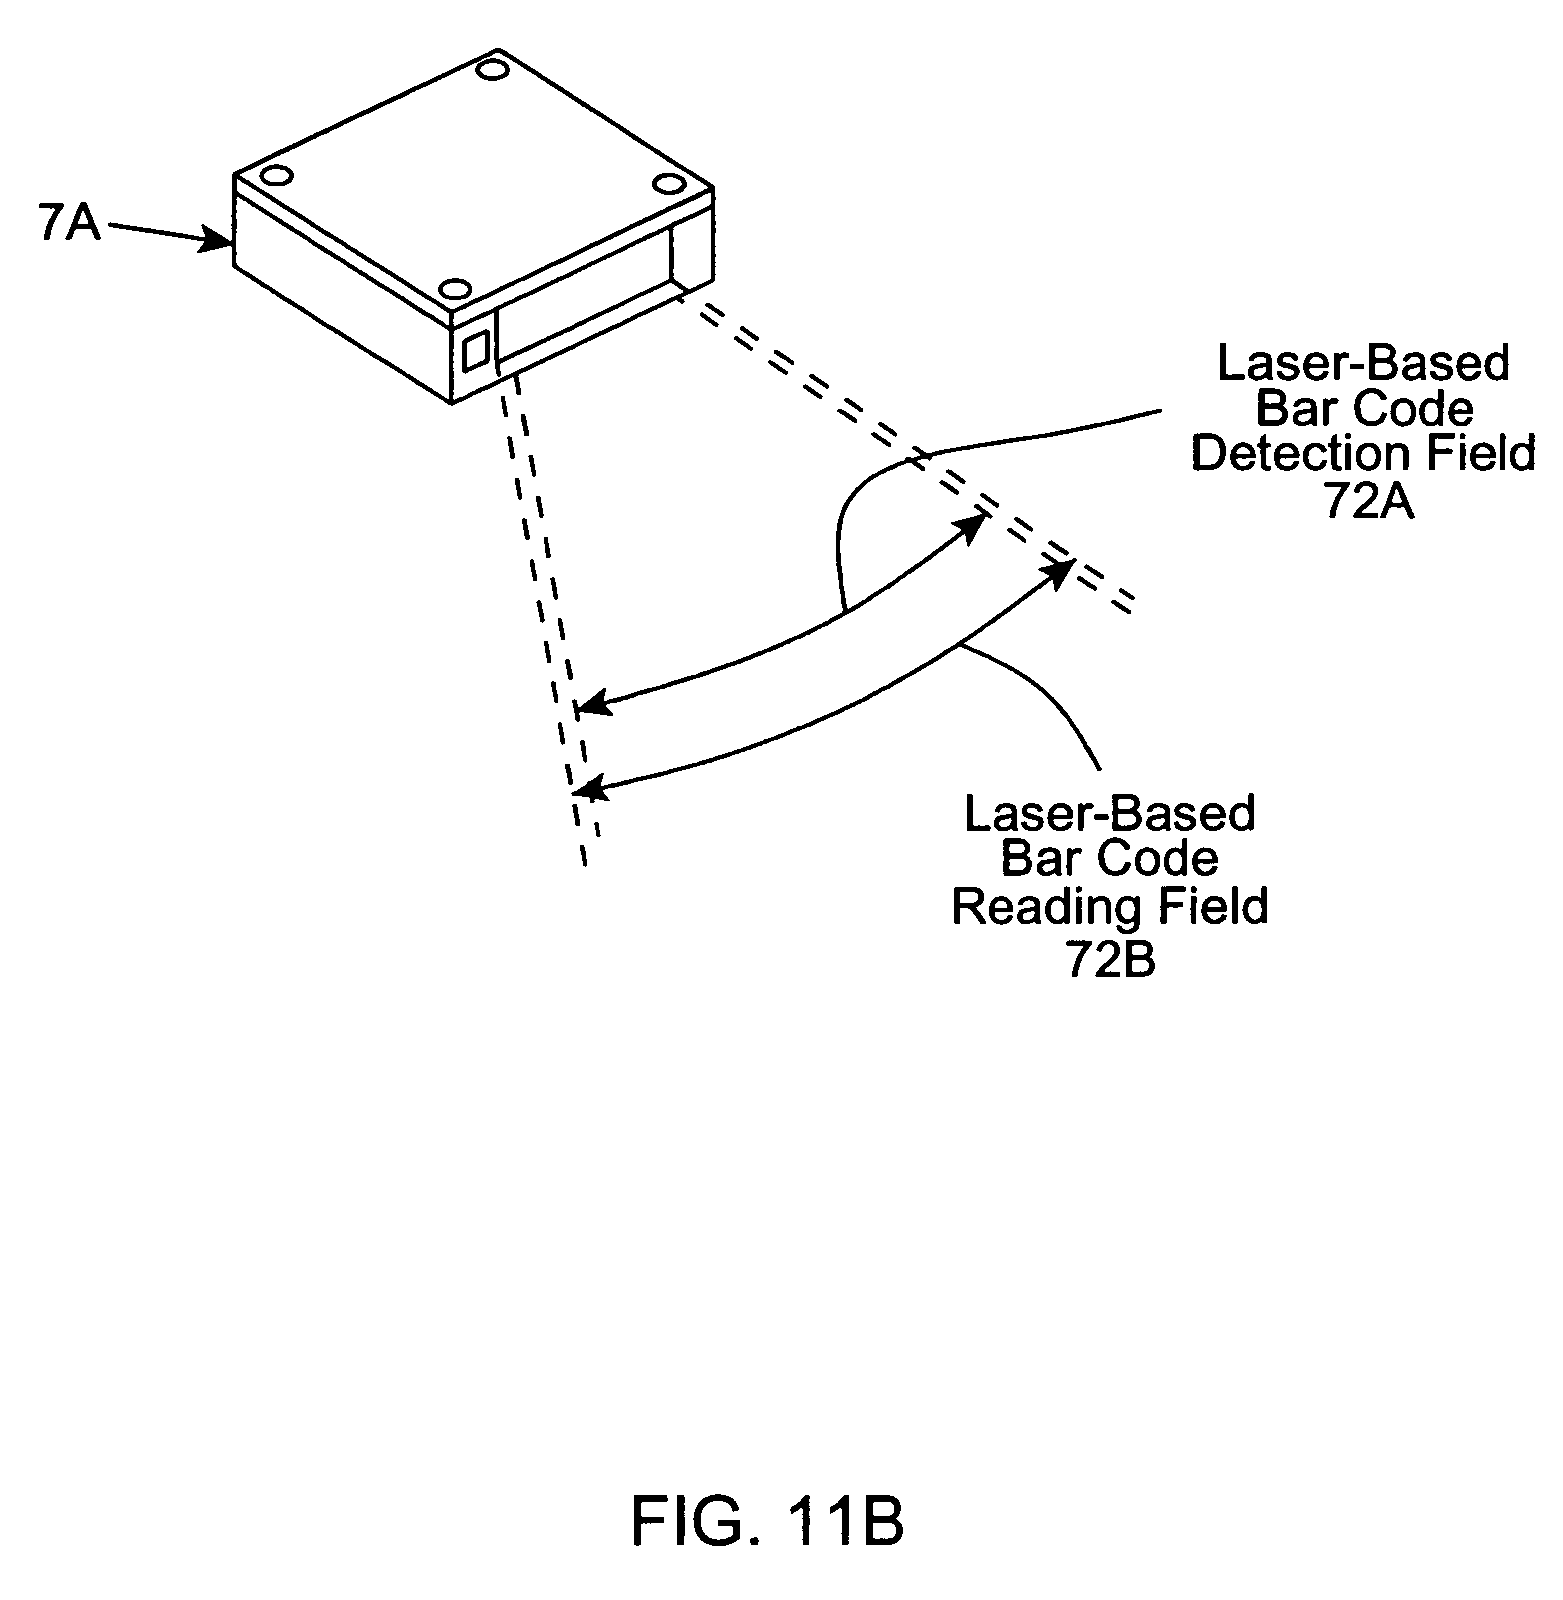 Patent Us 7121468 B2 This Ladder Diagram Arrangement May Be Easily Coded As Shown In The Images